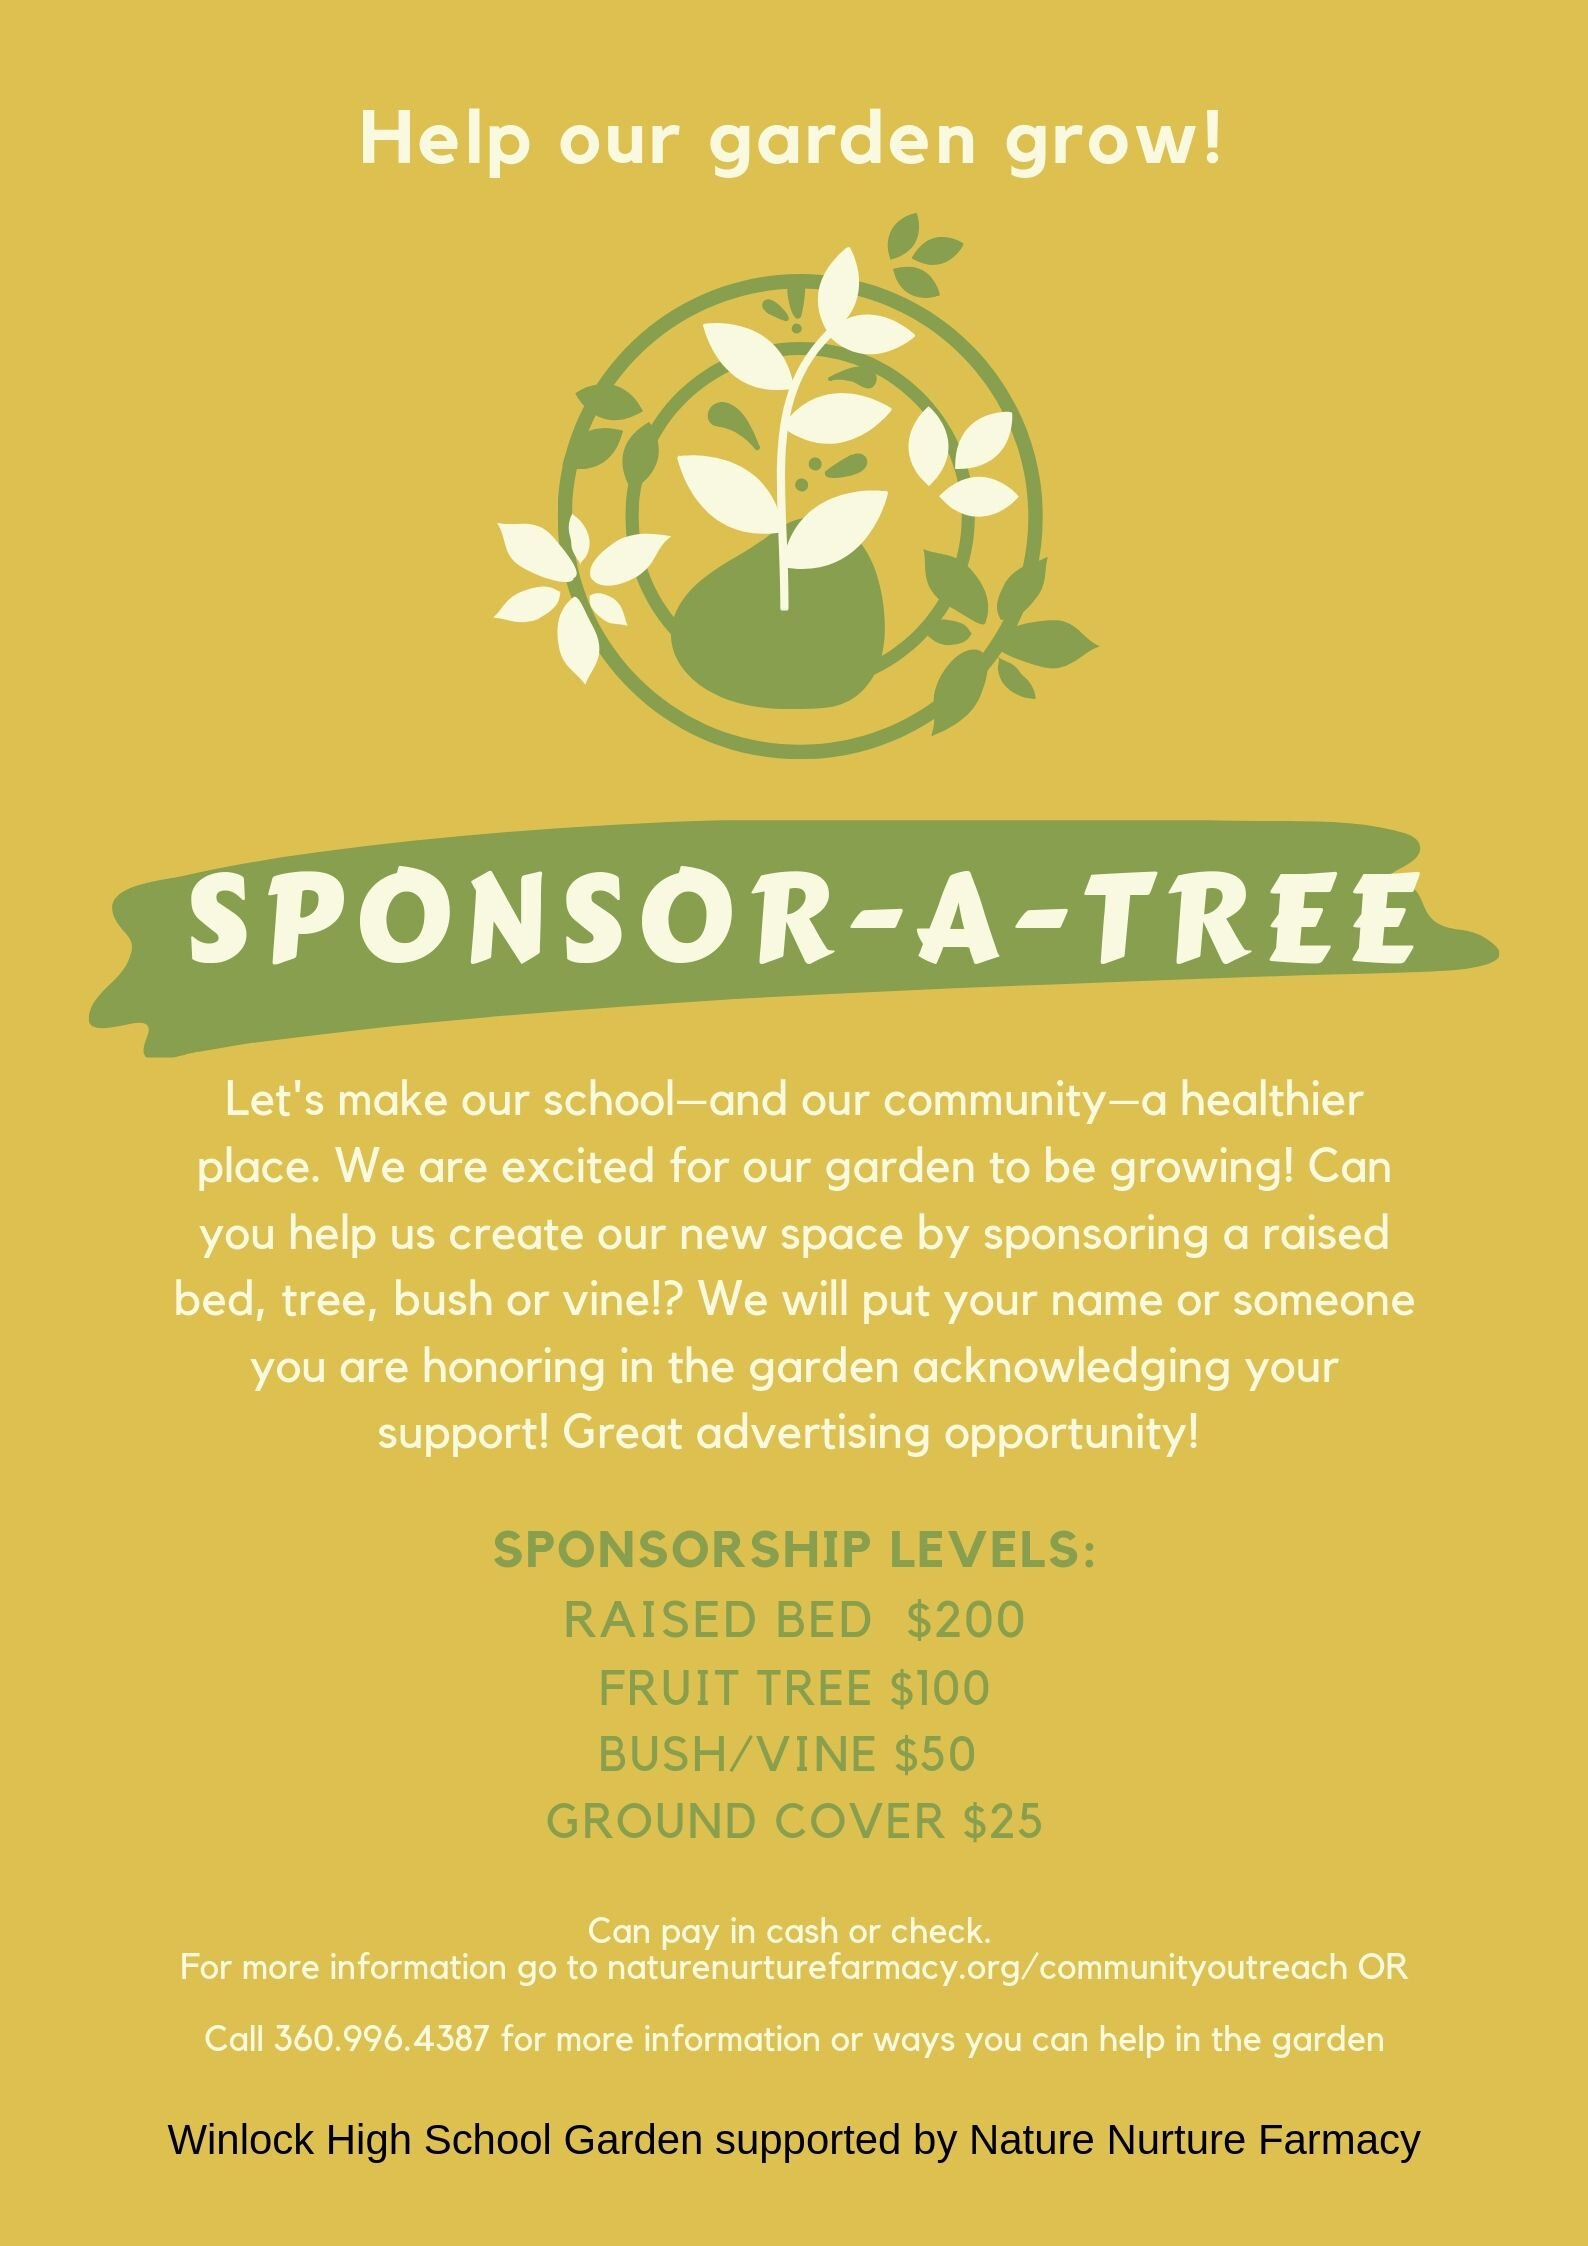 Sponsor - A - Tree - Winlock High School Community Garden and Nature Nurture Farmacy are looking for sponsors to support our growing garden! This is a great way to show your support and do something green in the community that will have impacts for generations to come! Sponsorship Levels:Raised Bed - $200Fruit Tree - $100Bush/Vine - $50Ground Cover - $25Your support allows us to plant all the plants and winterize them so come spring we are ready to really start planting with the kids! See our FB page for more info and updates on our progress!